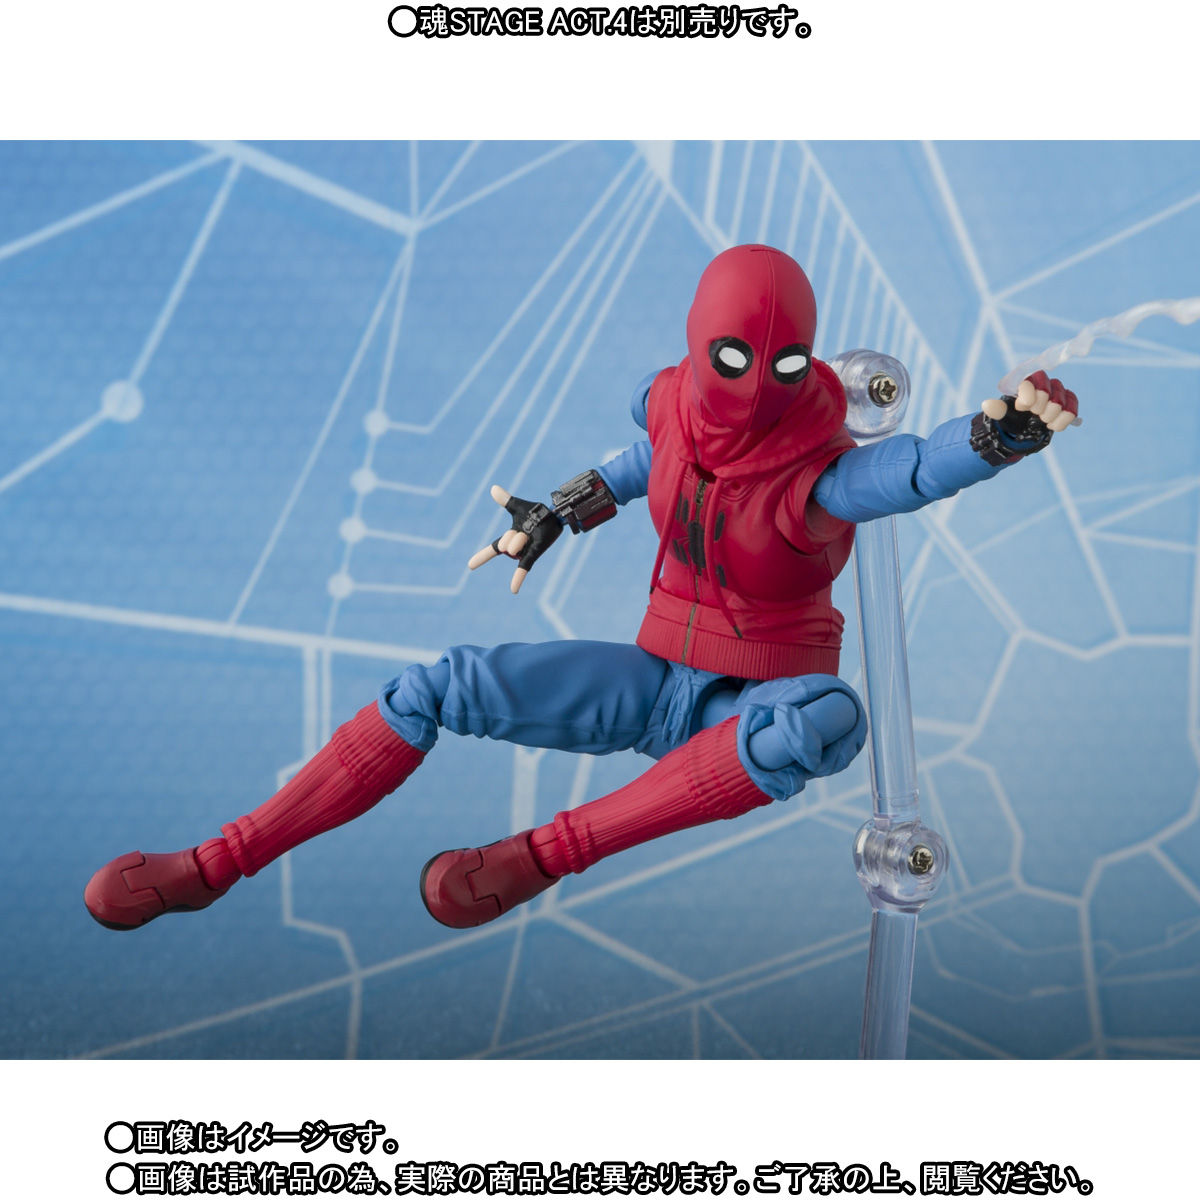 S.H. Figuarts Spider-Man: Homecoming – Homemade Suit Spider-Man Figure Pre-Orders